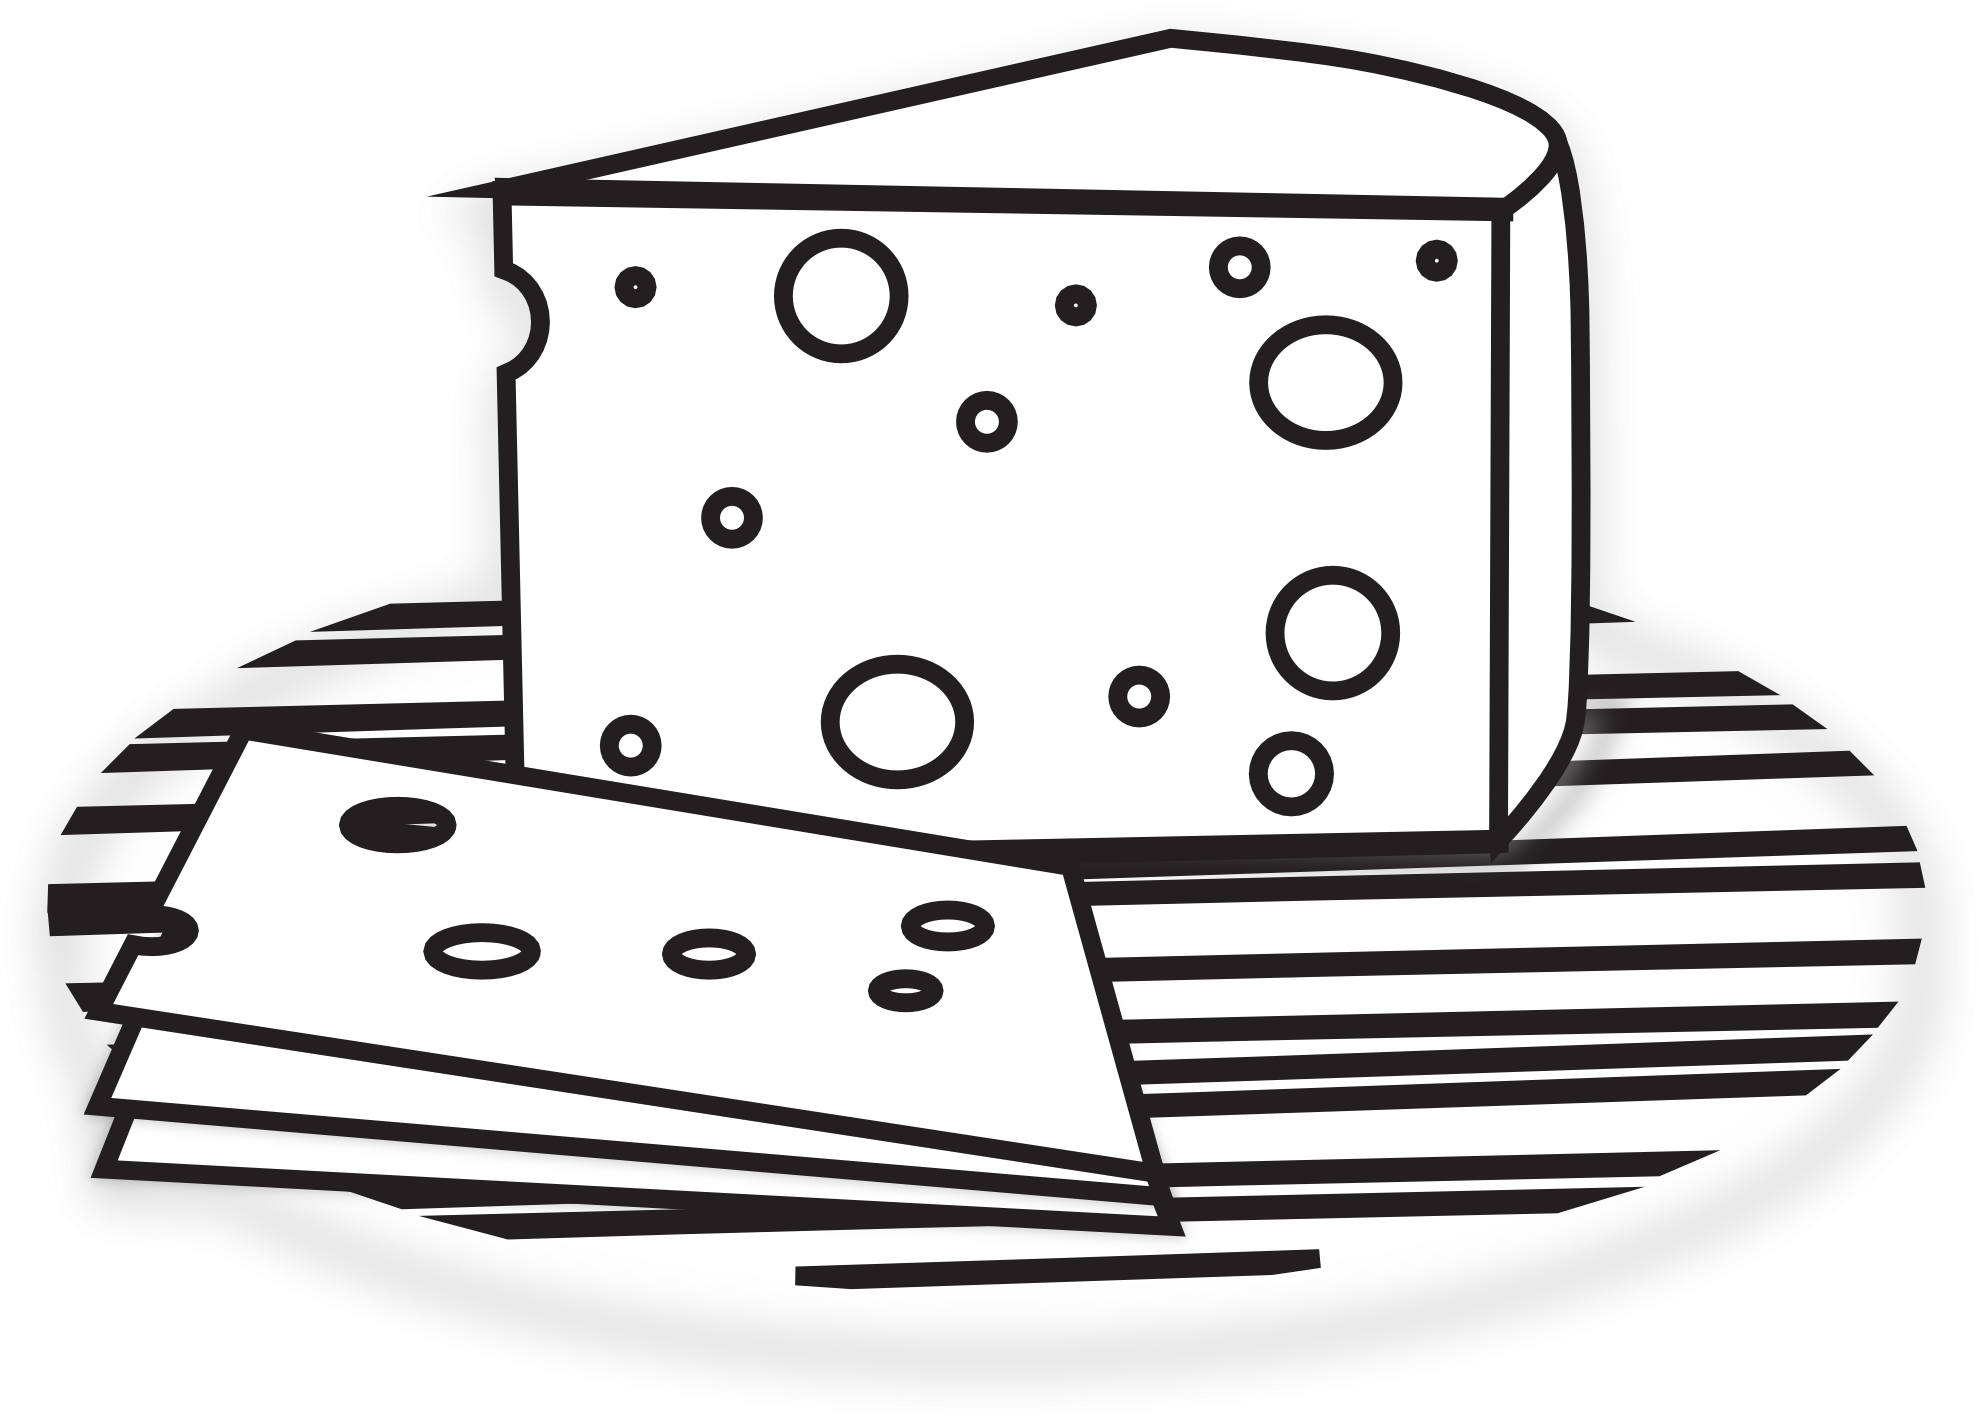 Cheese clipart black and white clip art freeuse library Wine And Cheese Clipart Black And White #138458 - PNG Images - PNGio clip art freeuse library